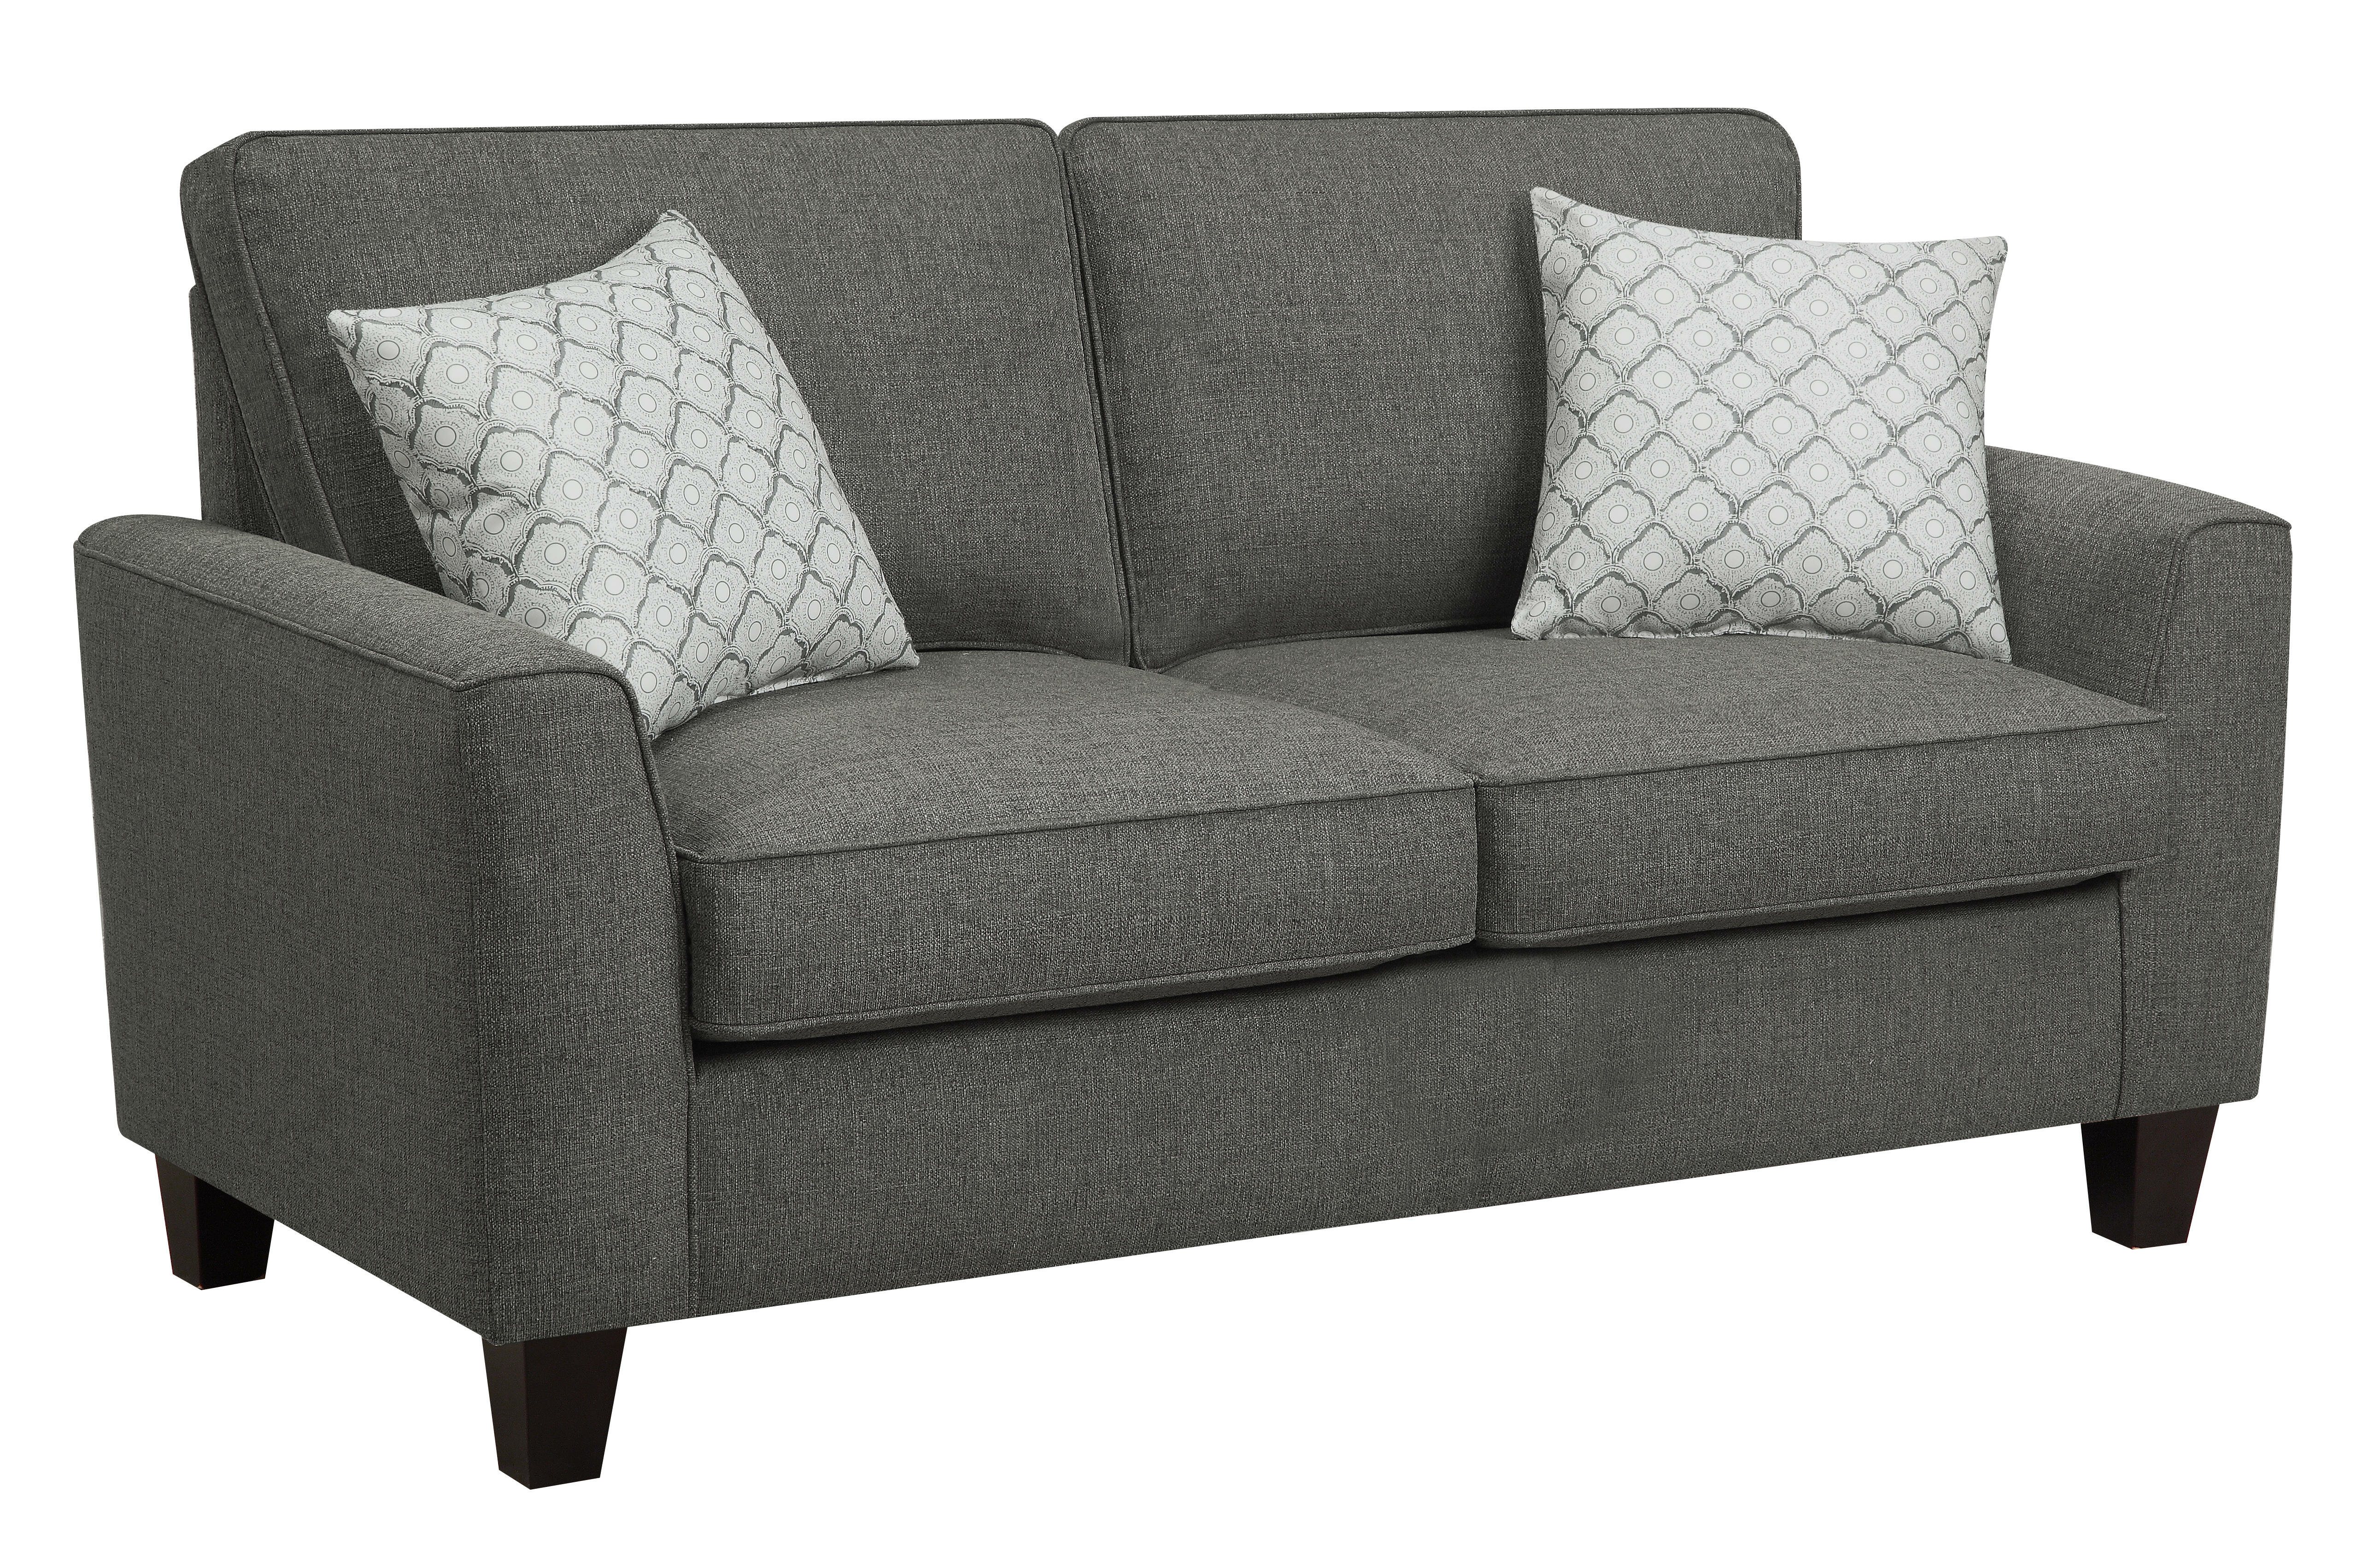 loveseat sectional measurements with sofa family pin contemporary small room look